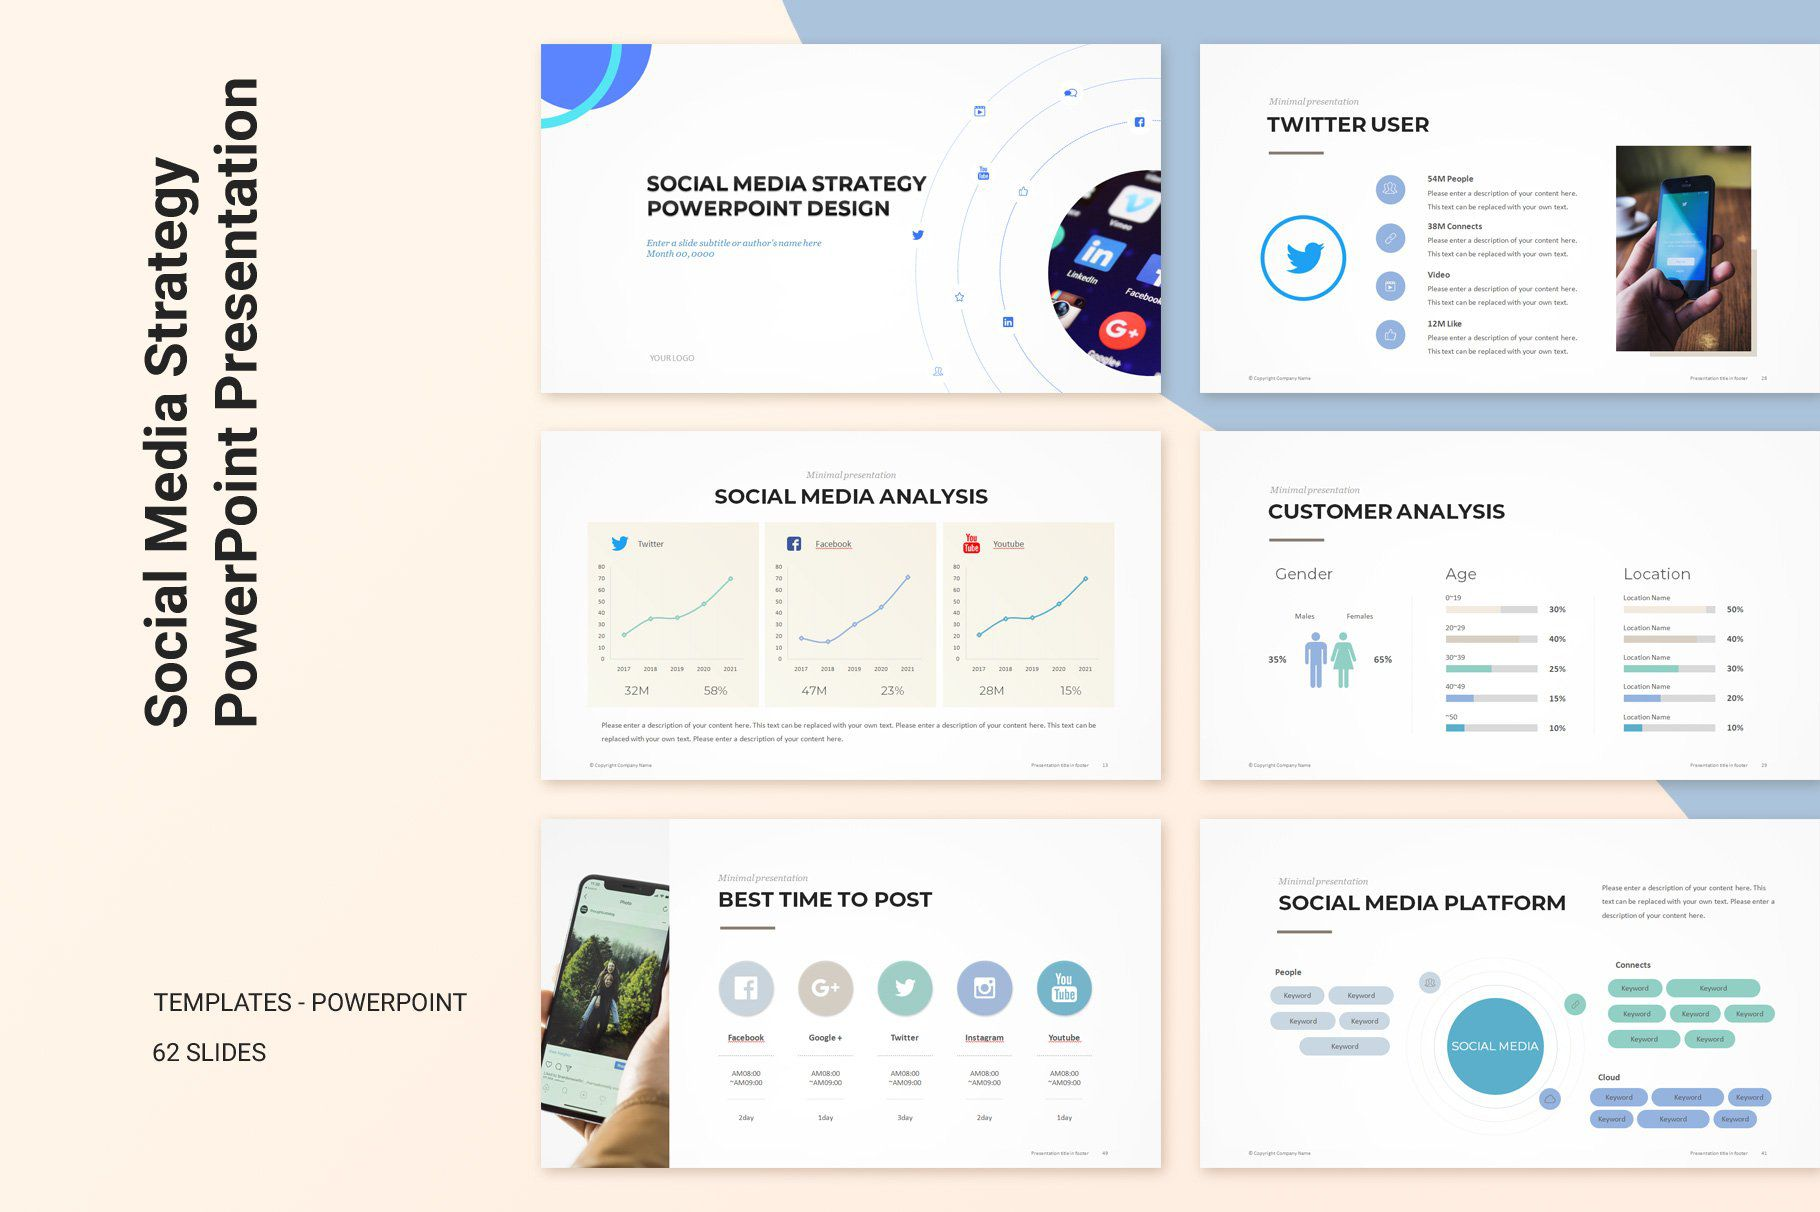 009 Fascinating Social Media Strategy Powerpoint Template Example  Marketing Plan FreeFull